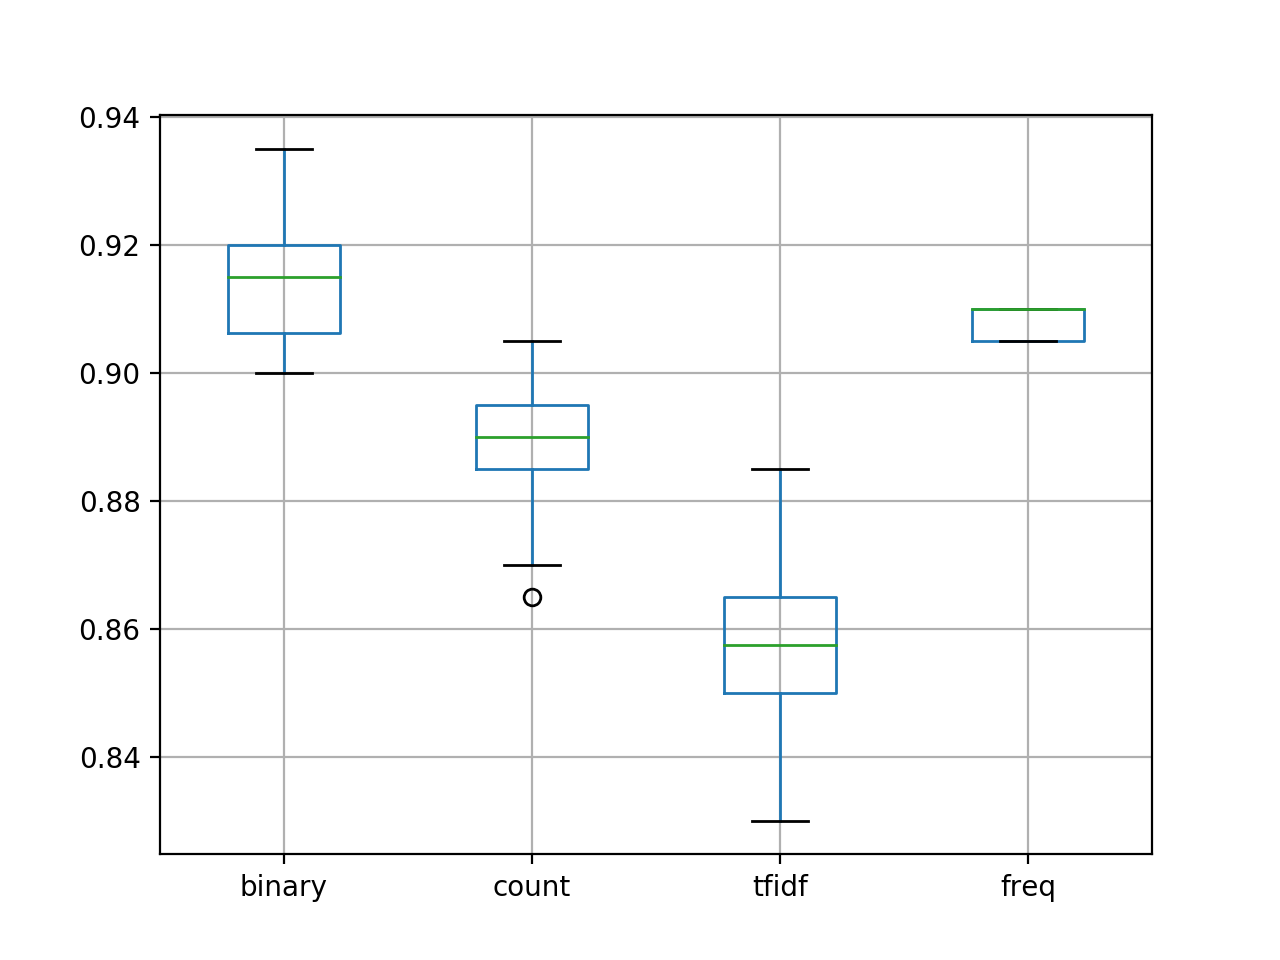 Box and Whisker Plot for Model Accuracy with Different Word Scoring Methods